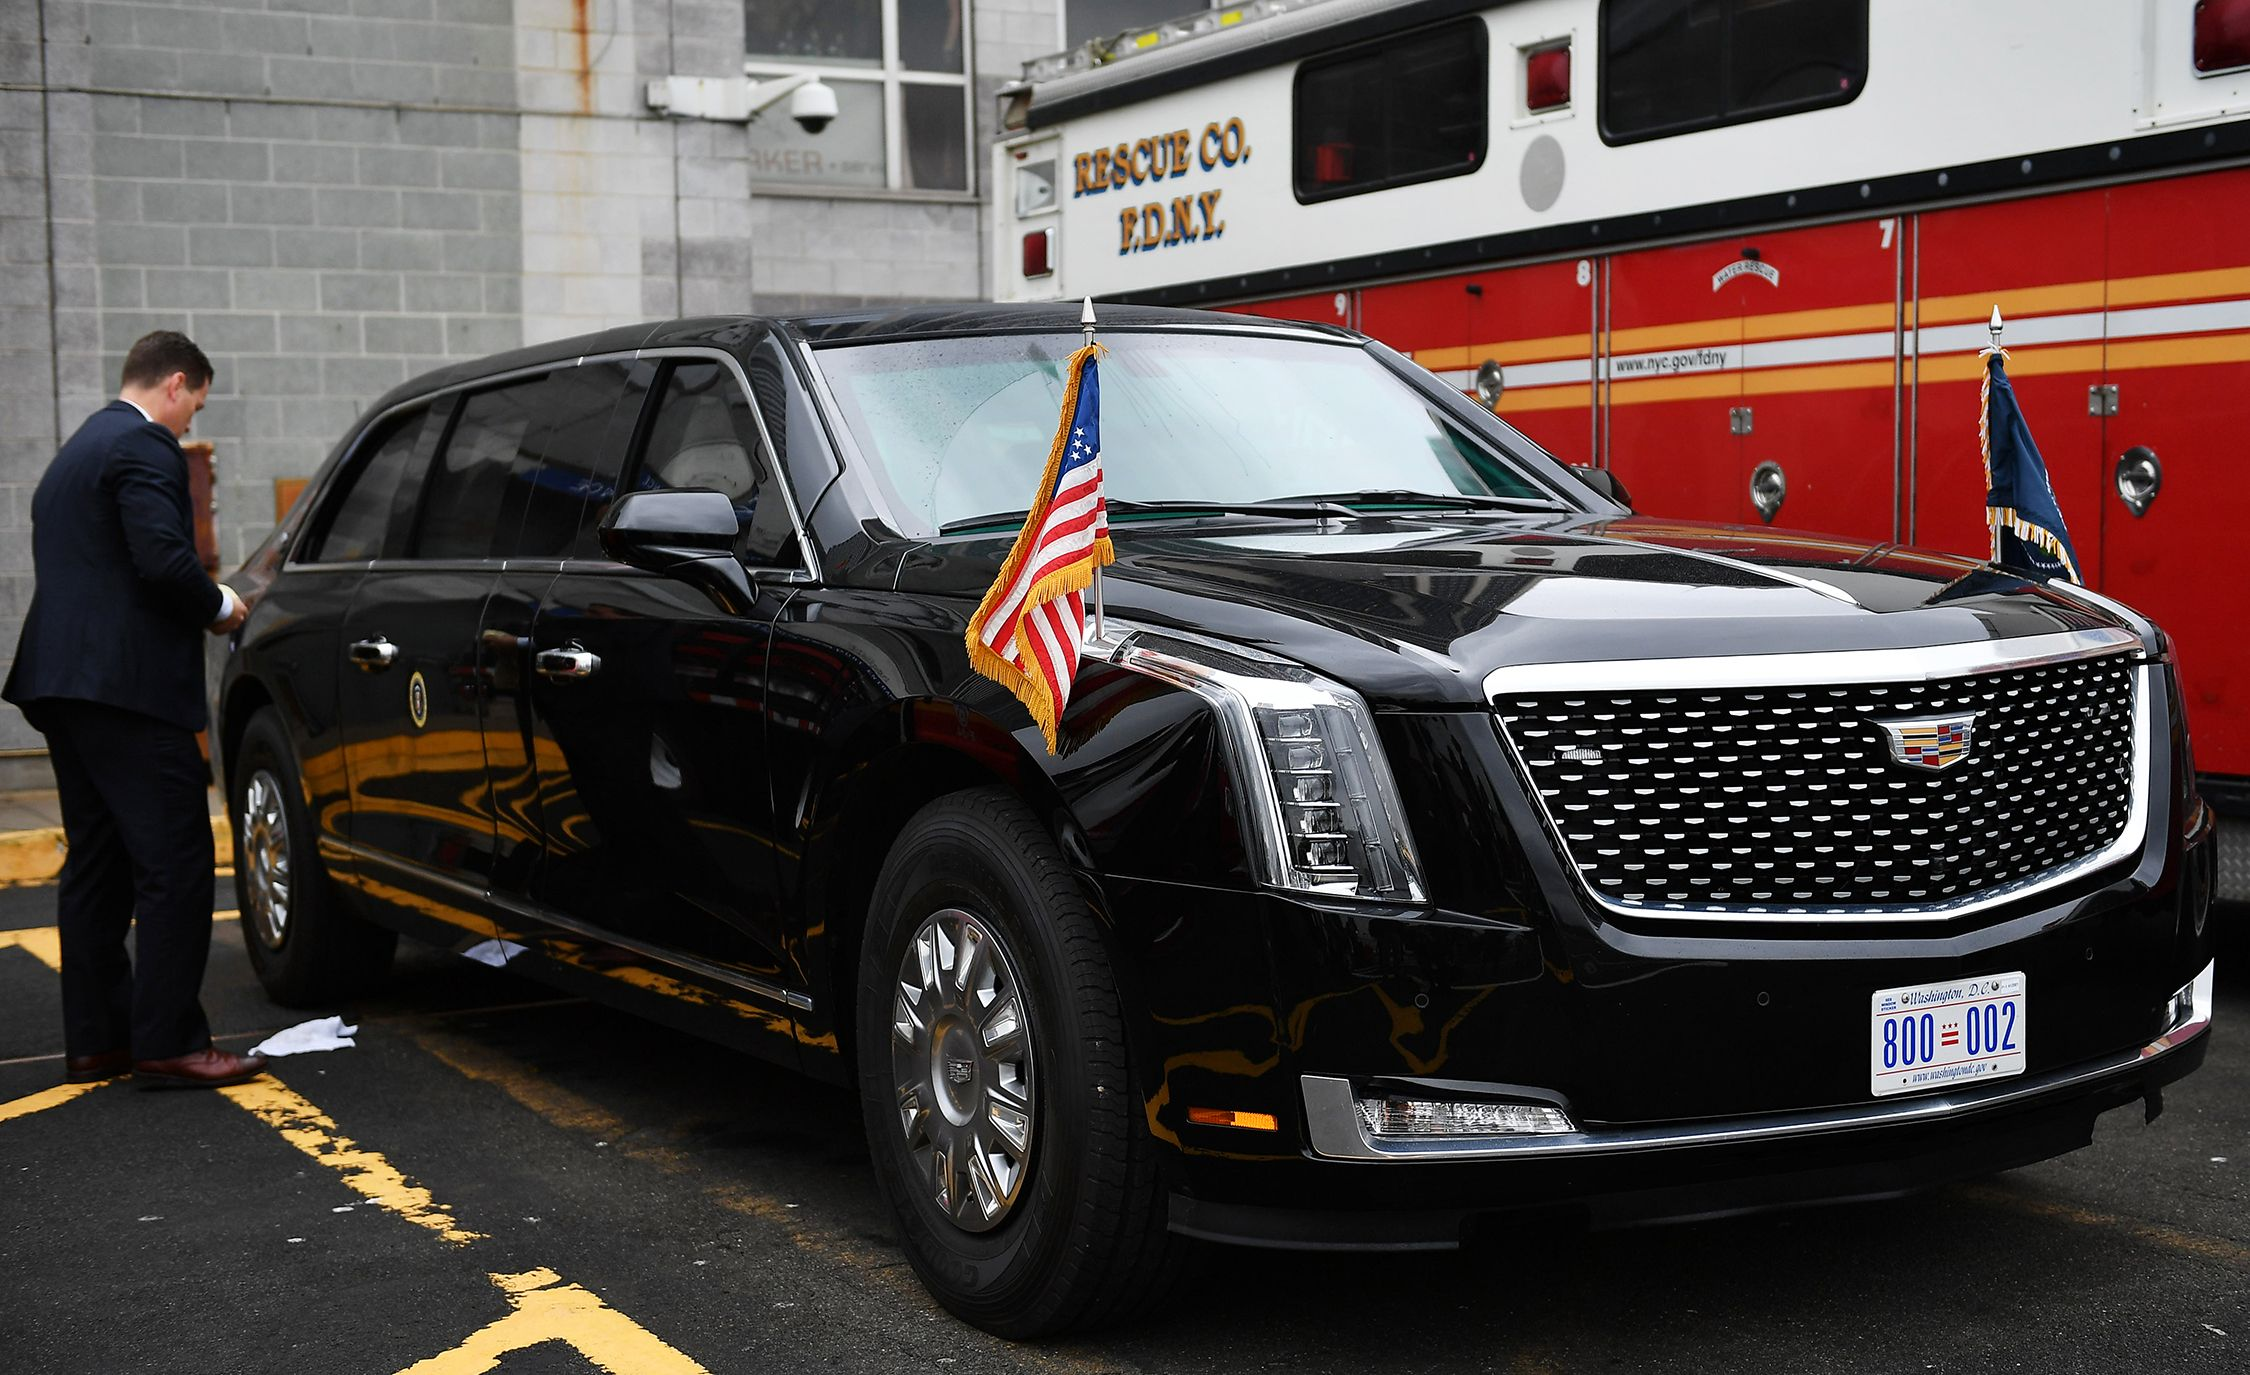 President Donald Trump S New Cadillac Quot Beast Quot Limo Revealed